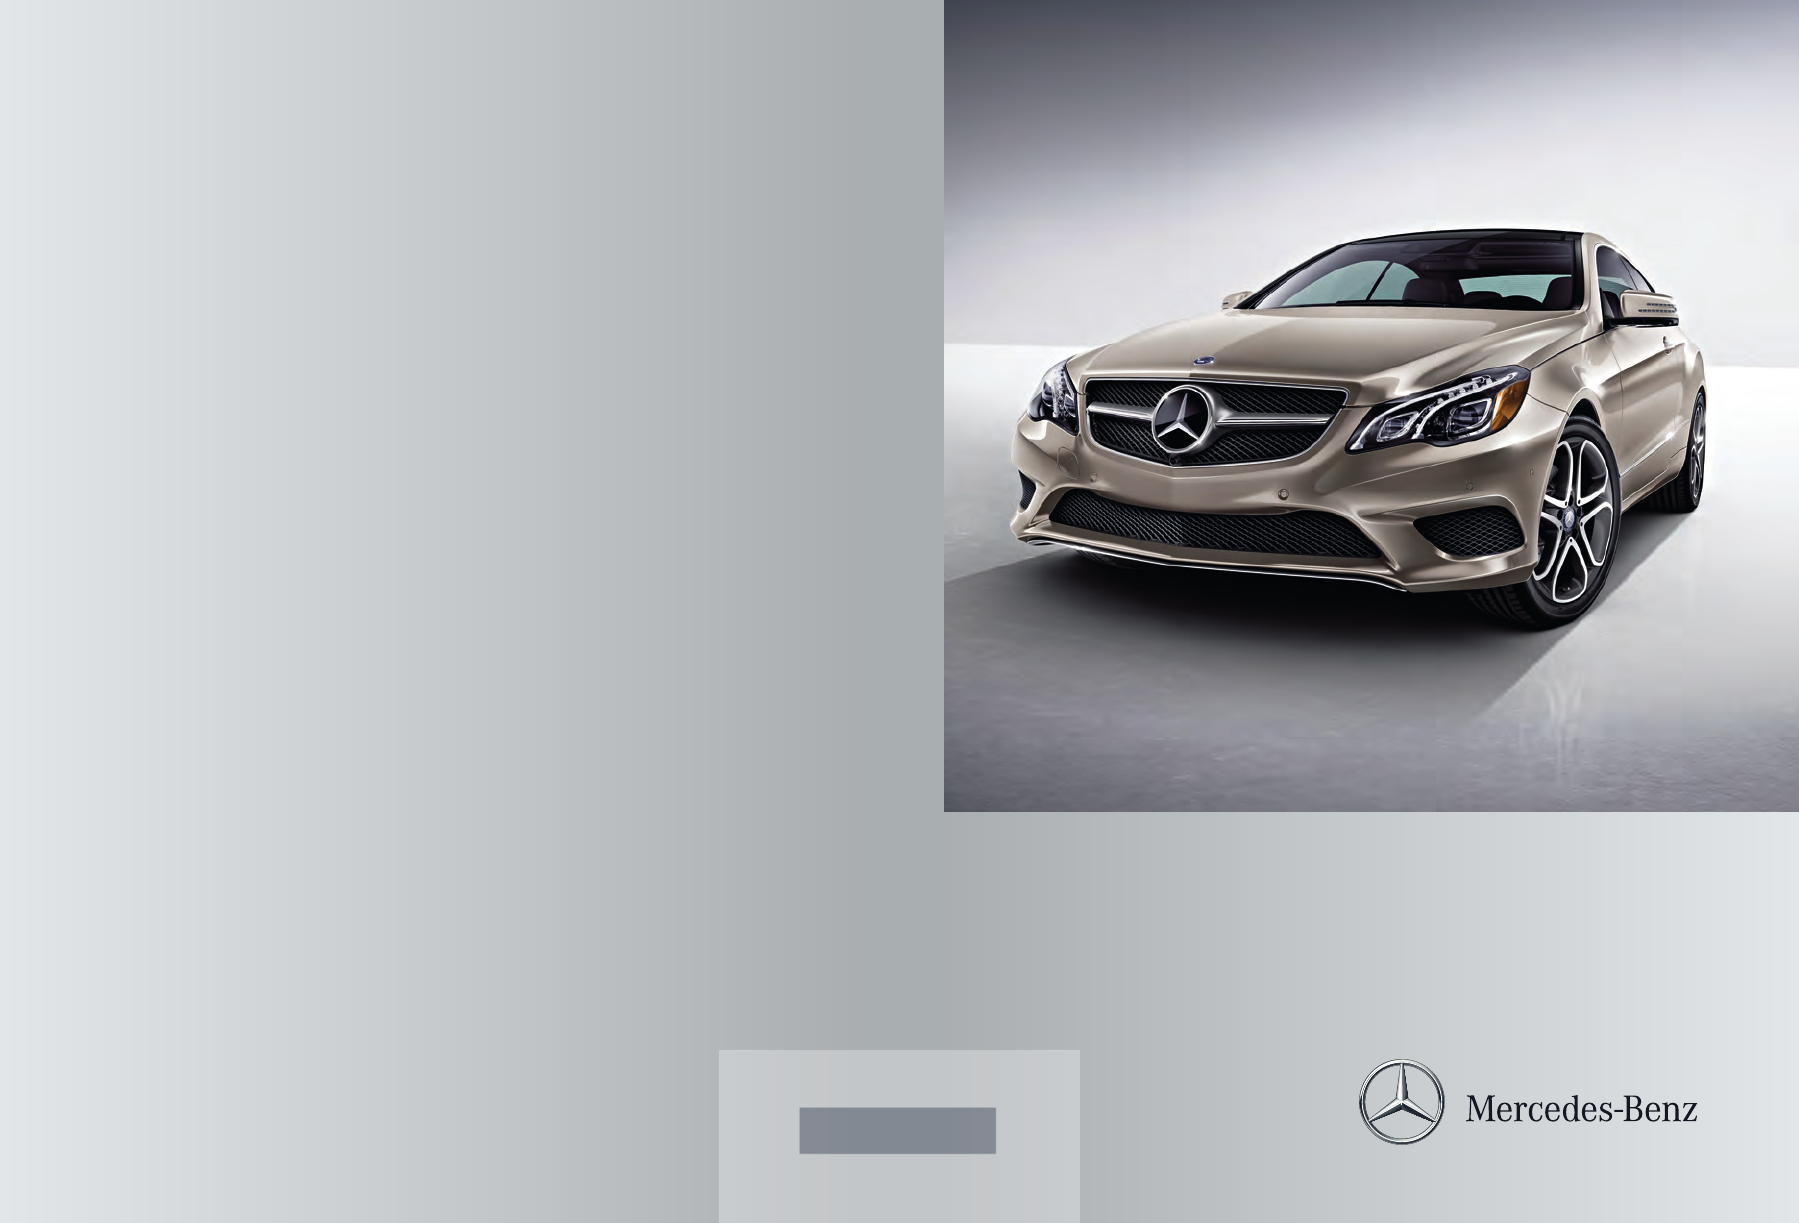 2014 mercedes benz e class owners manual pdf for Mercedes benz e class manual